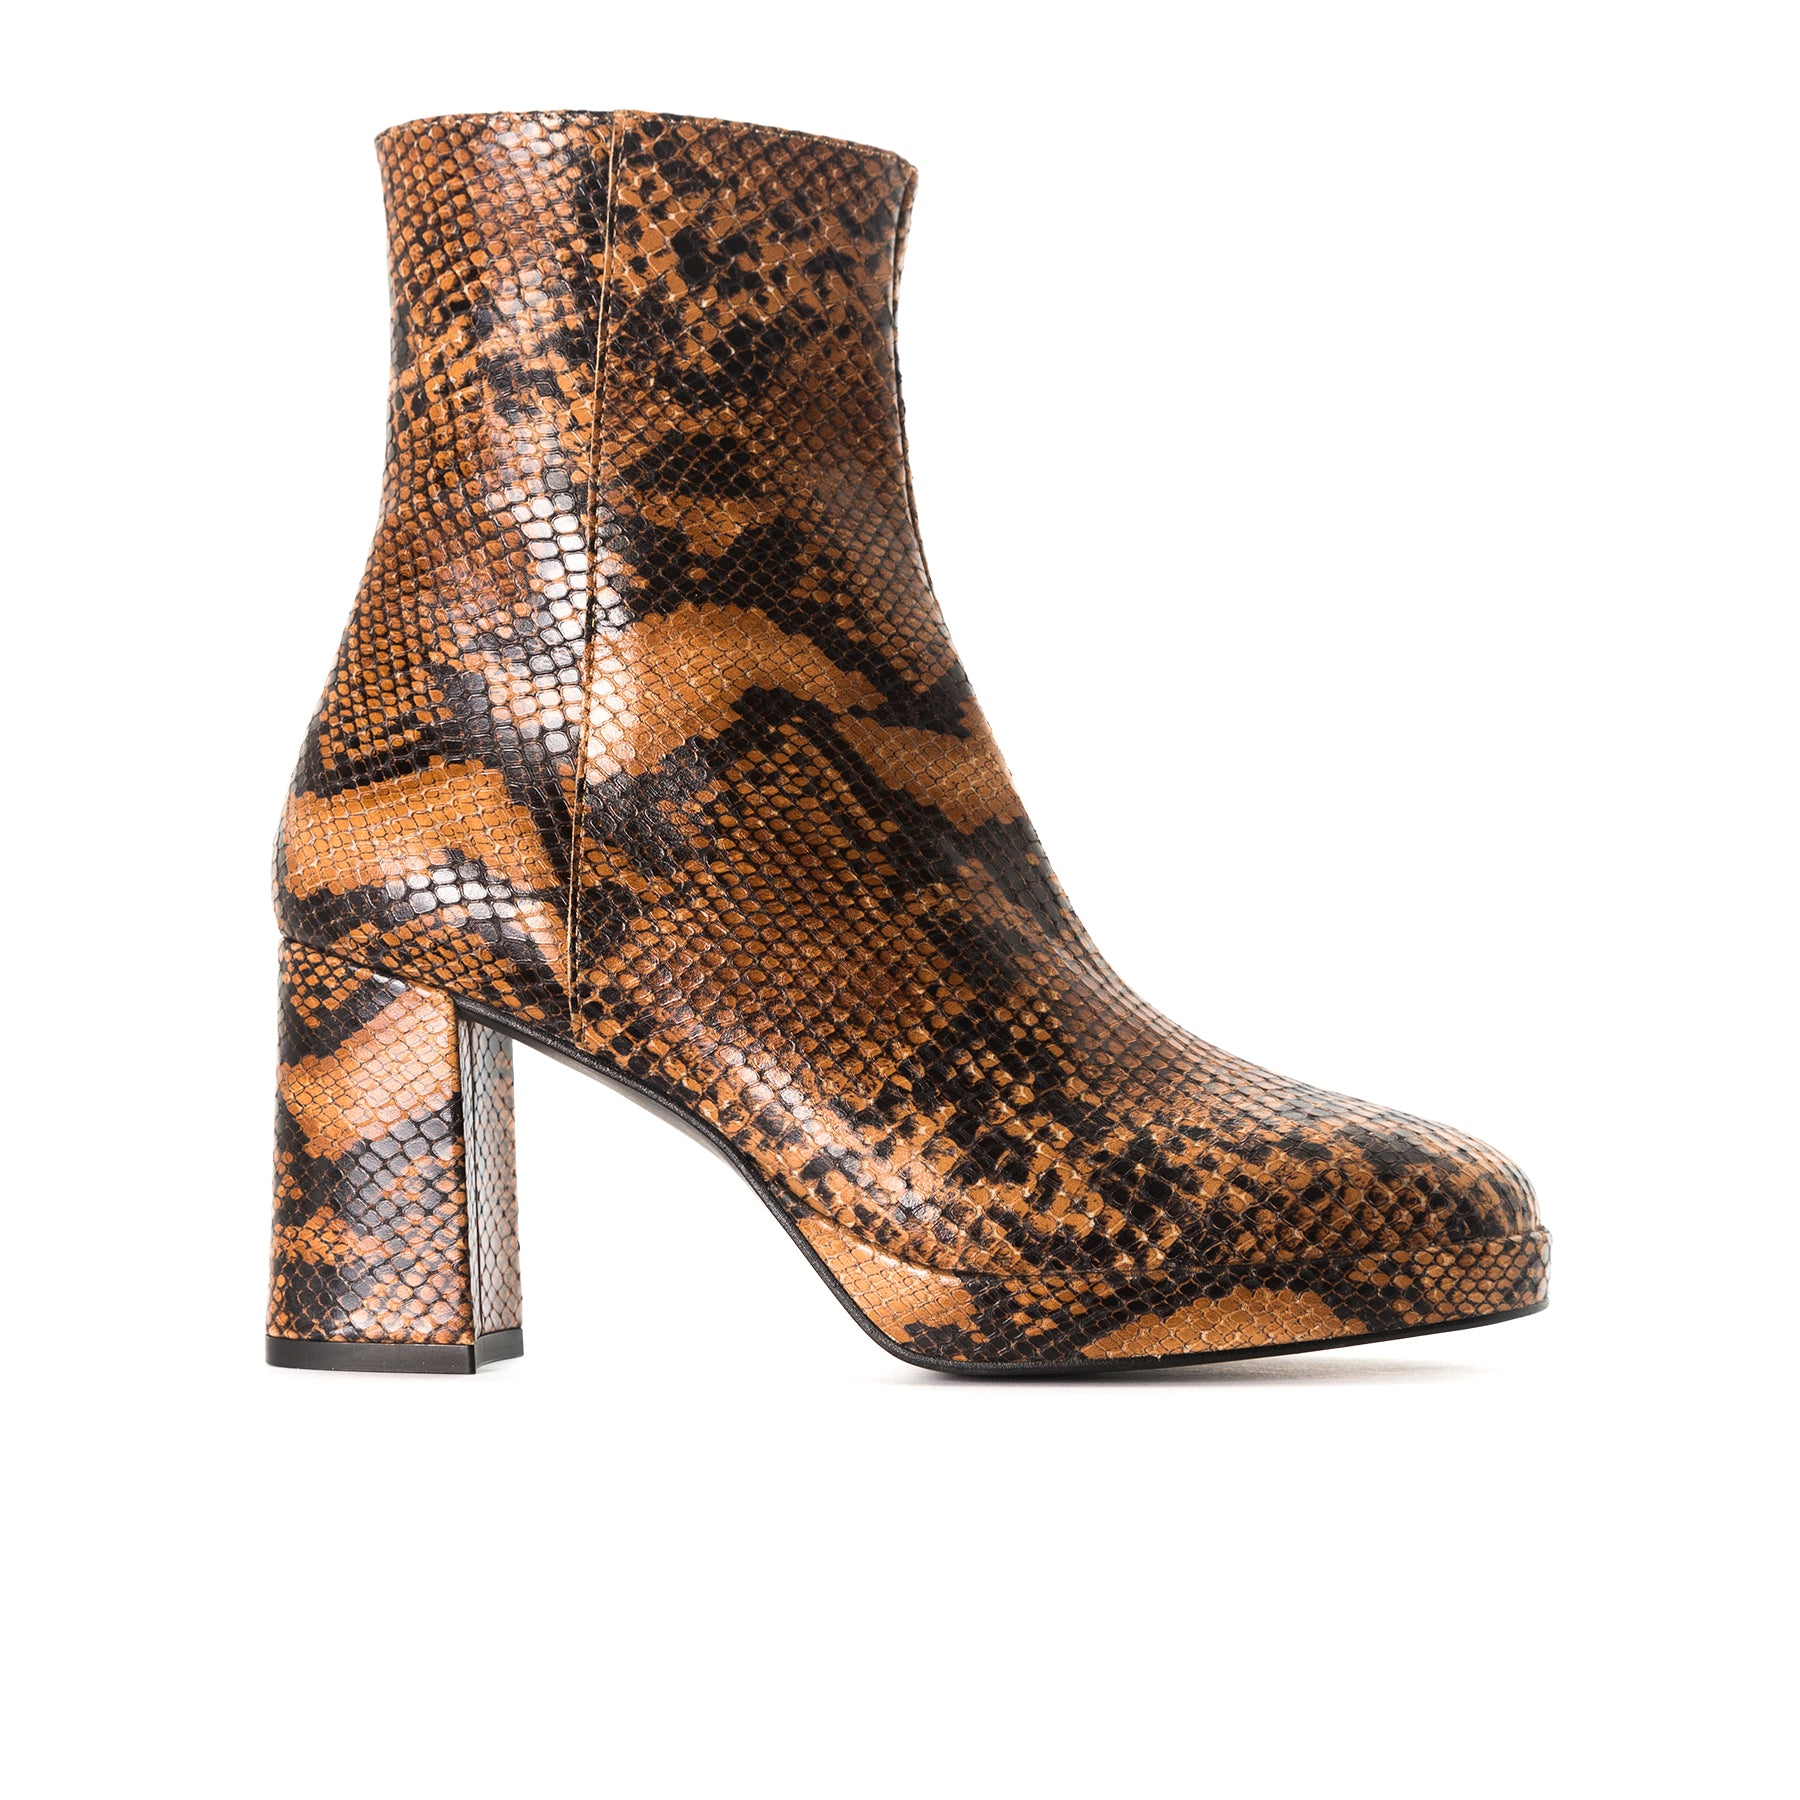 Henessey Tan Snake Ankle Boots